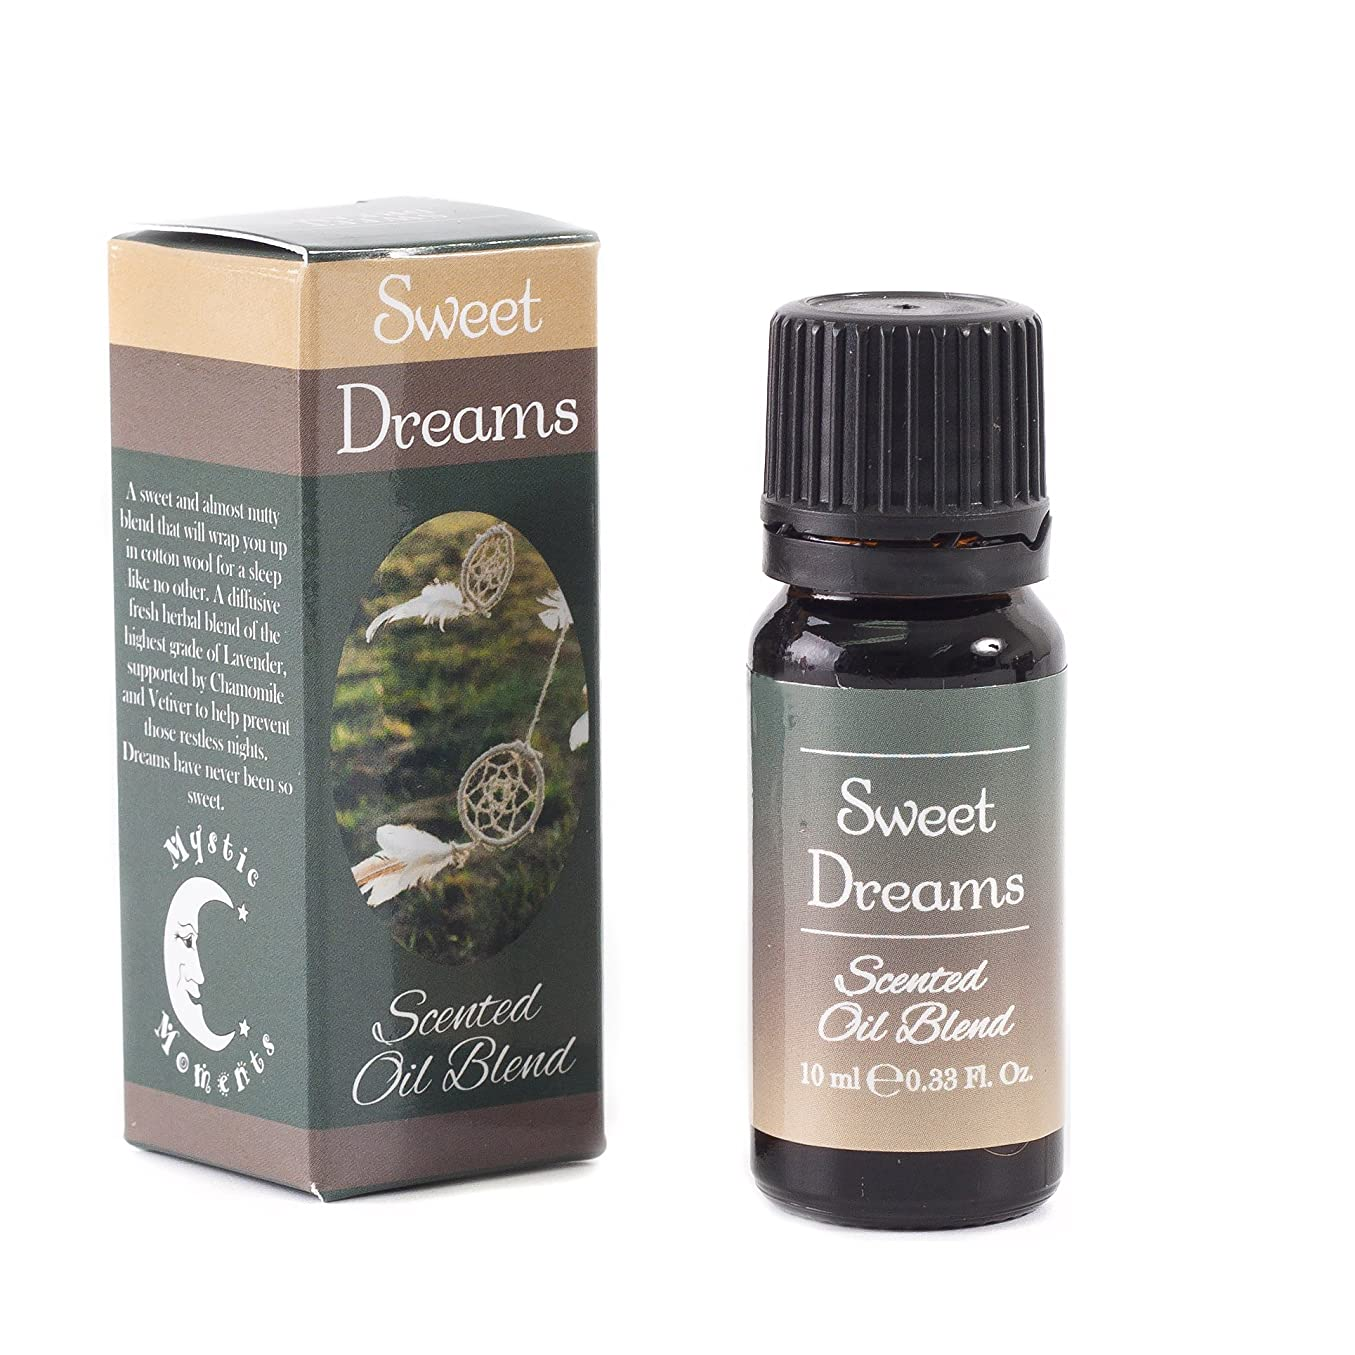 スピーチ寝てるお祝いMystic Moments | Sweet Dreams - Scented Oil Blend - 10ml